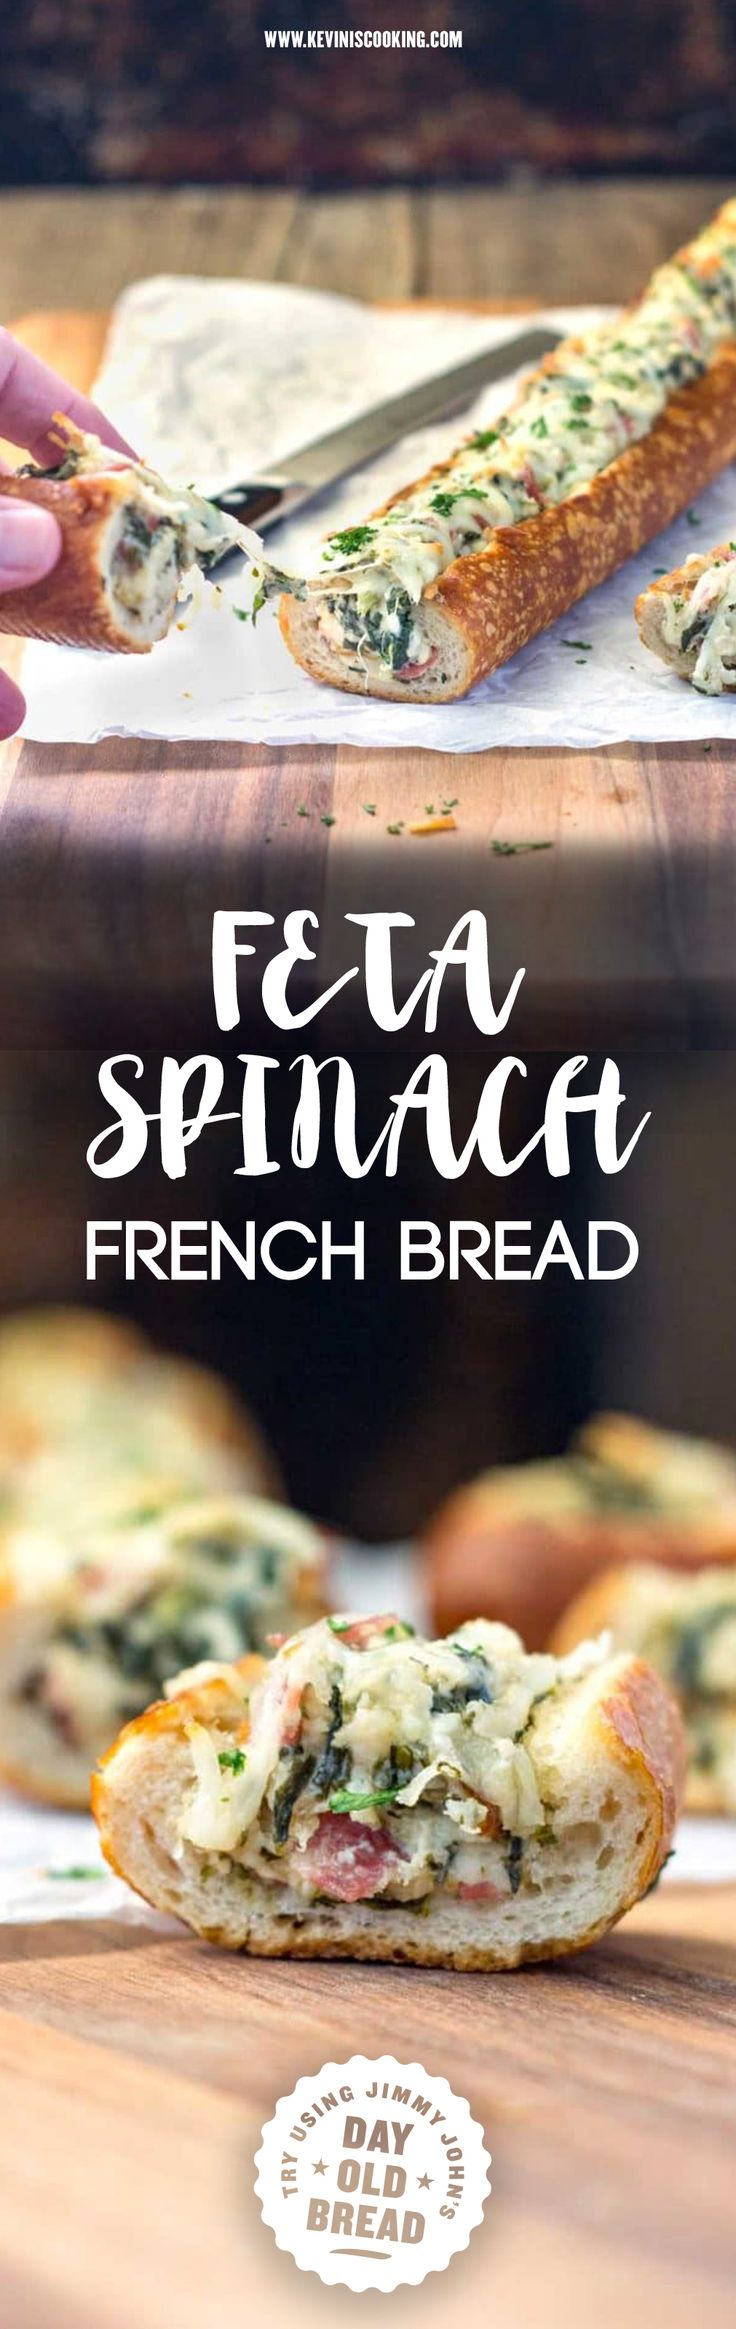 """""""This easy, cheesy, creamy feta and spinach stuffed french bread is deliriously rich and tasty. Perfect hand held appetizer for parties or the holidays!"""" Try making with Jimmy John's Day Old Bread for a yummy treat!"""